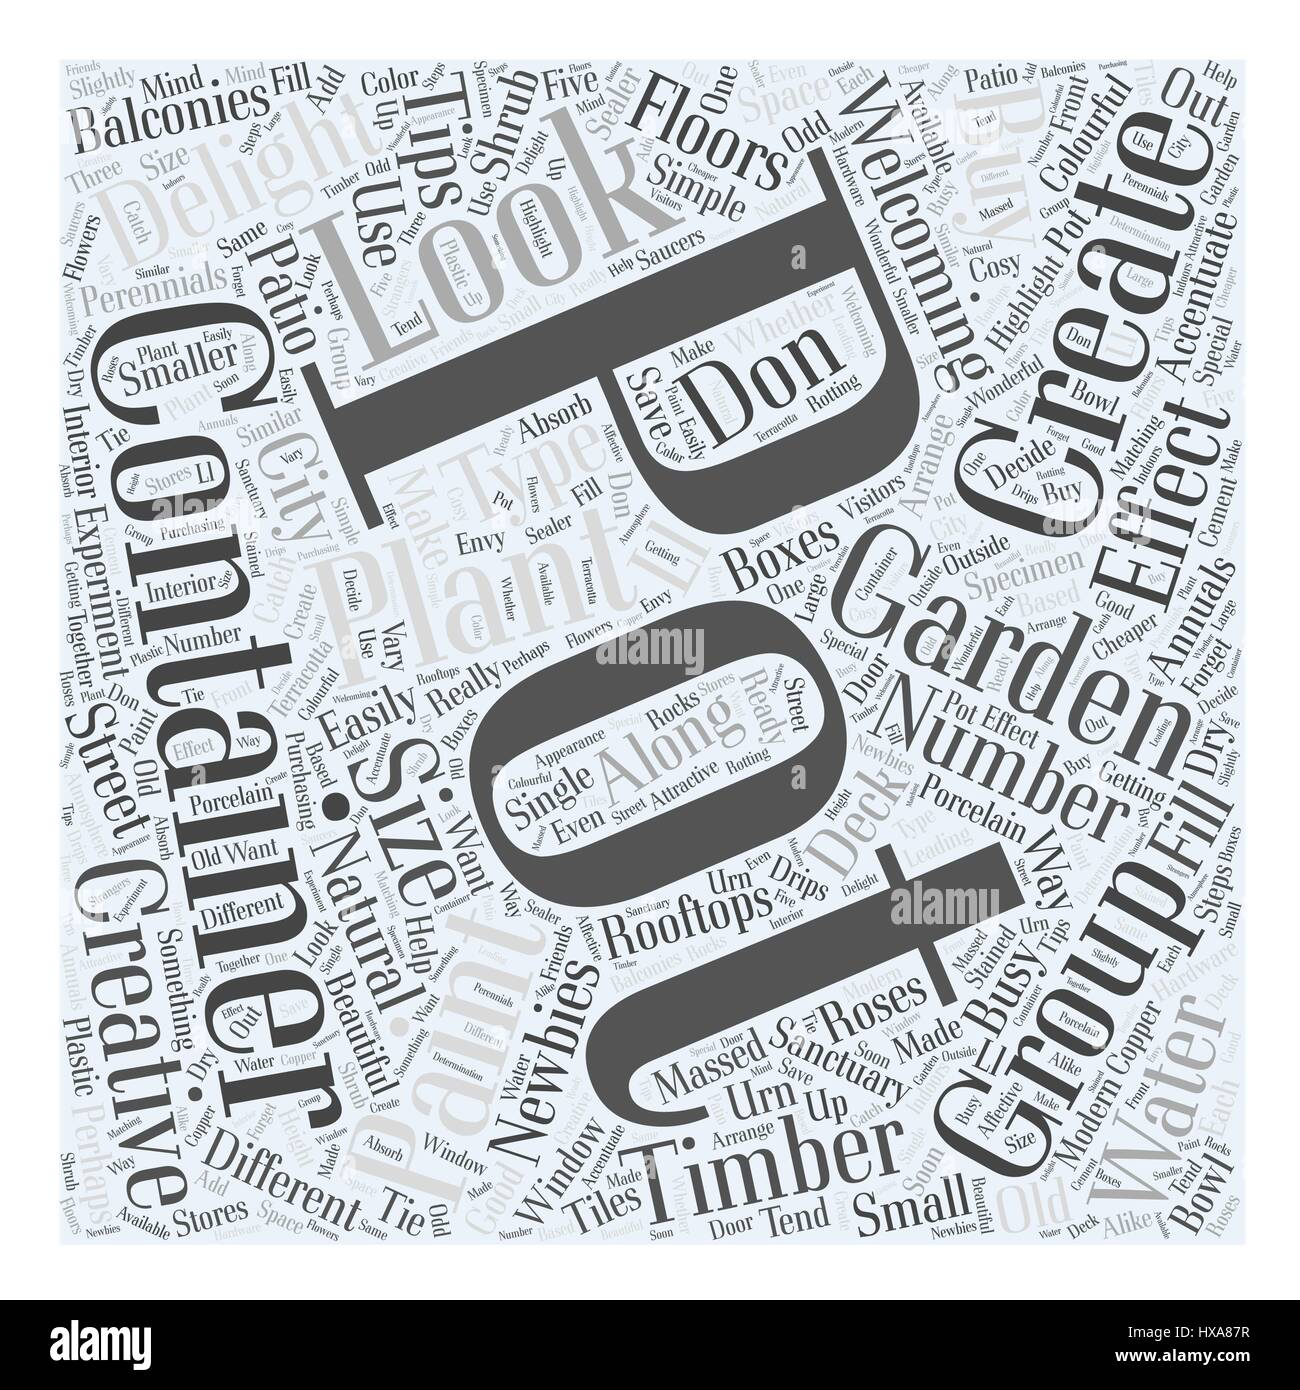 containergardening Word Cloud Concept - Stock Image